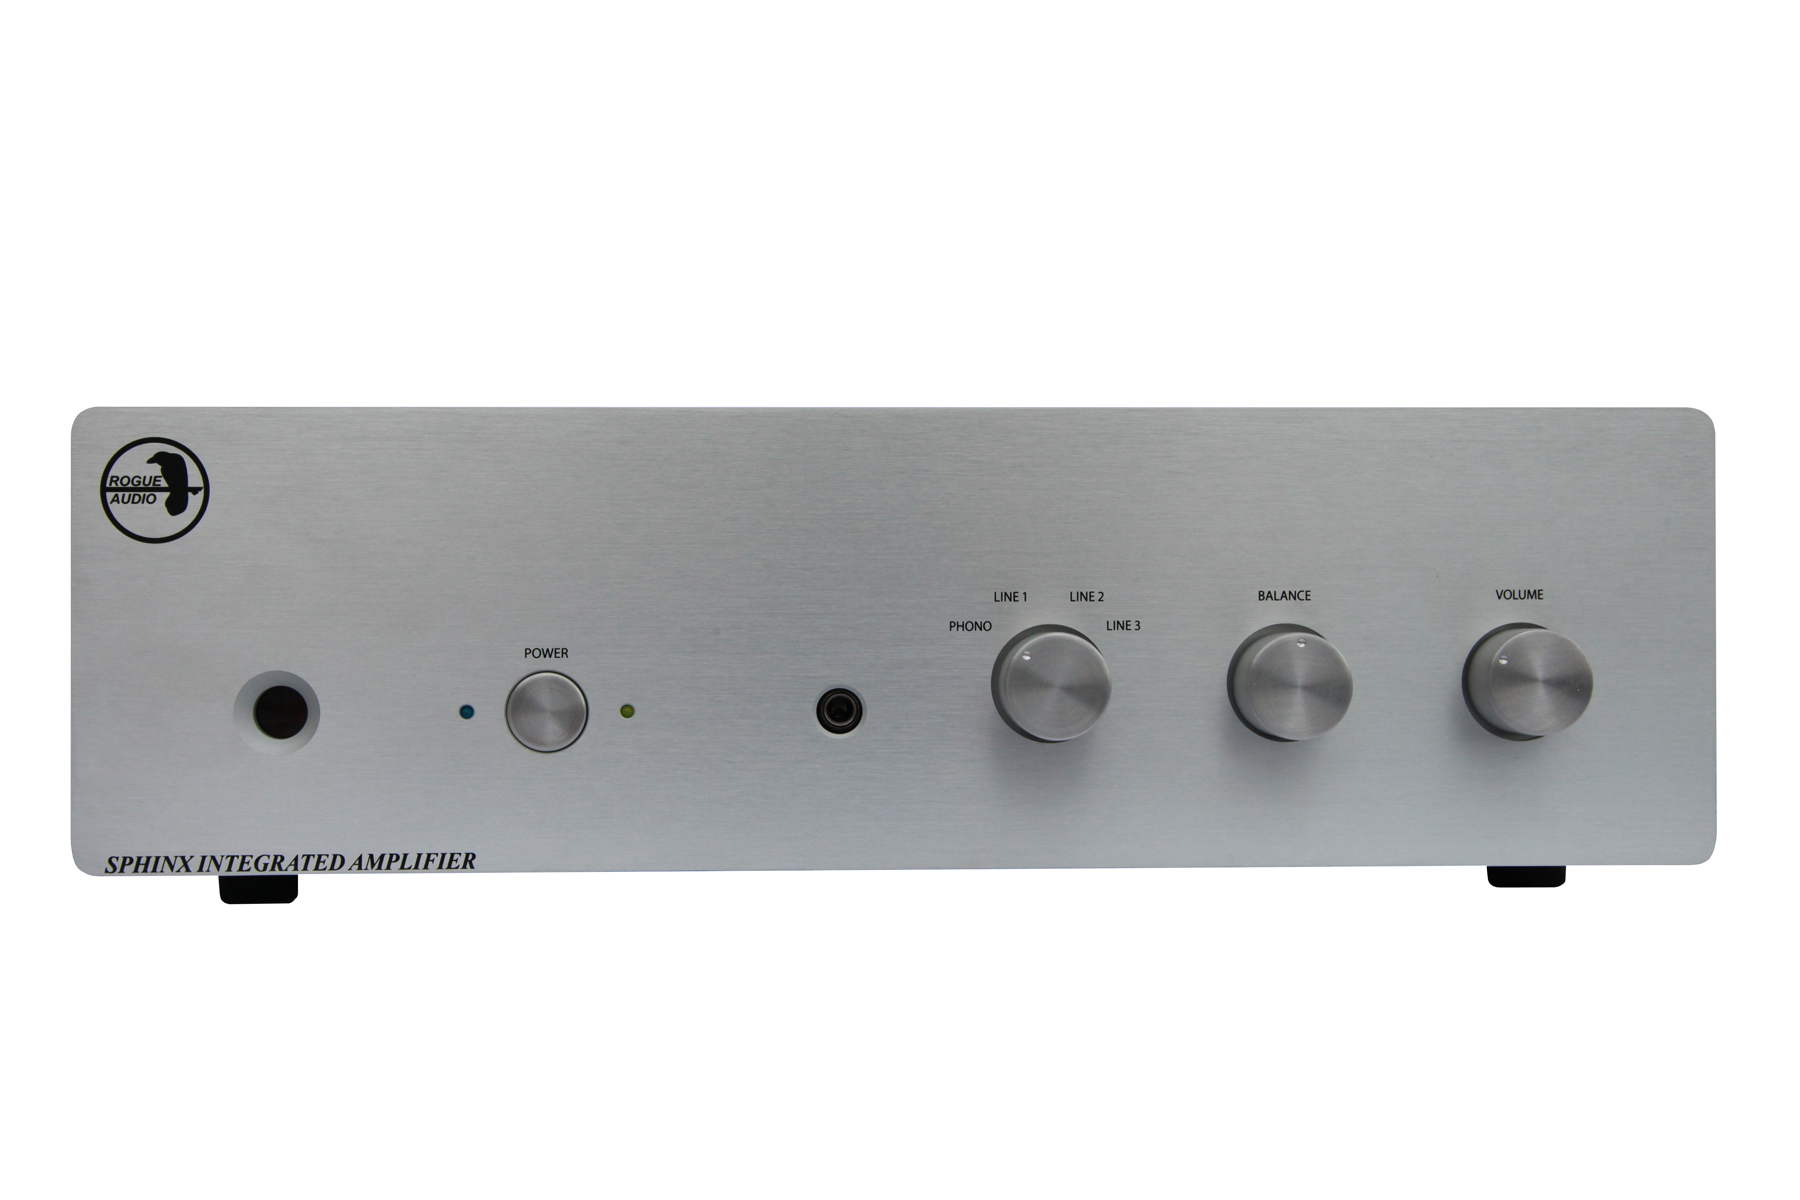 http://www.rogueaudio.com/Images/sphinxonwhitemed.jpg